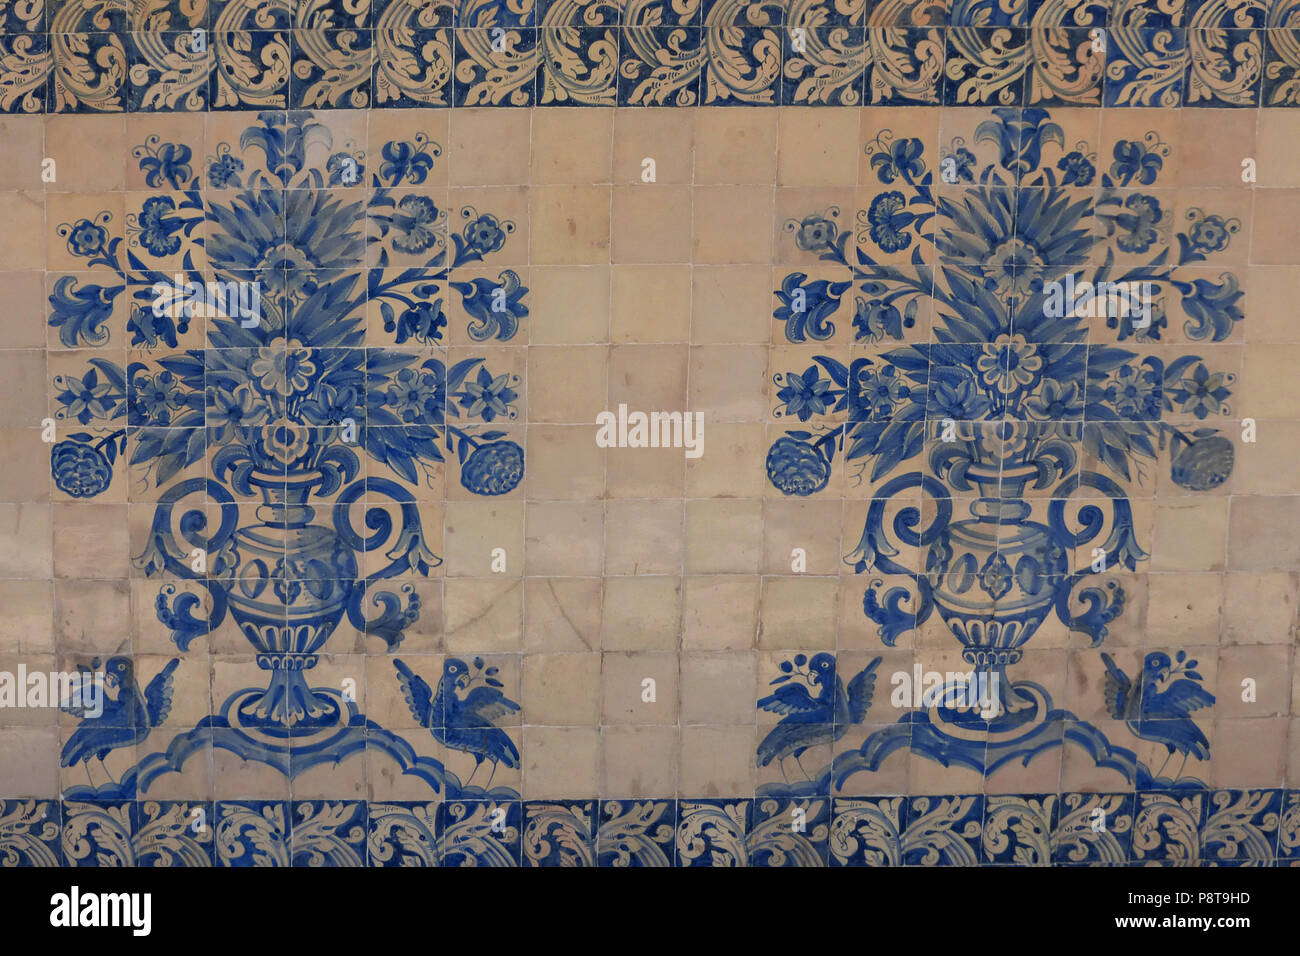 Traditional azulejos blue tiles in a passage way at Coimbra university. Portugal Stock Photo